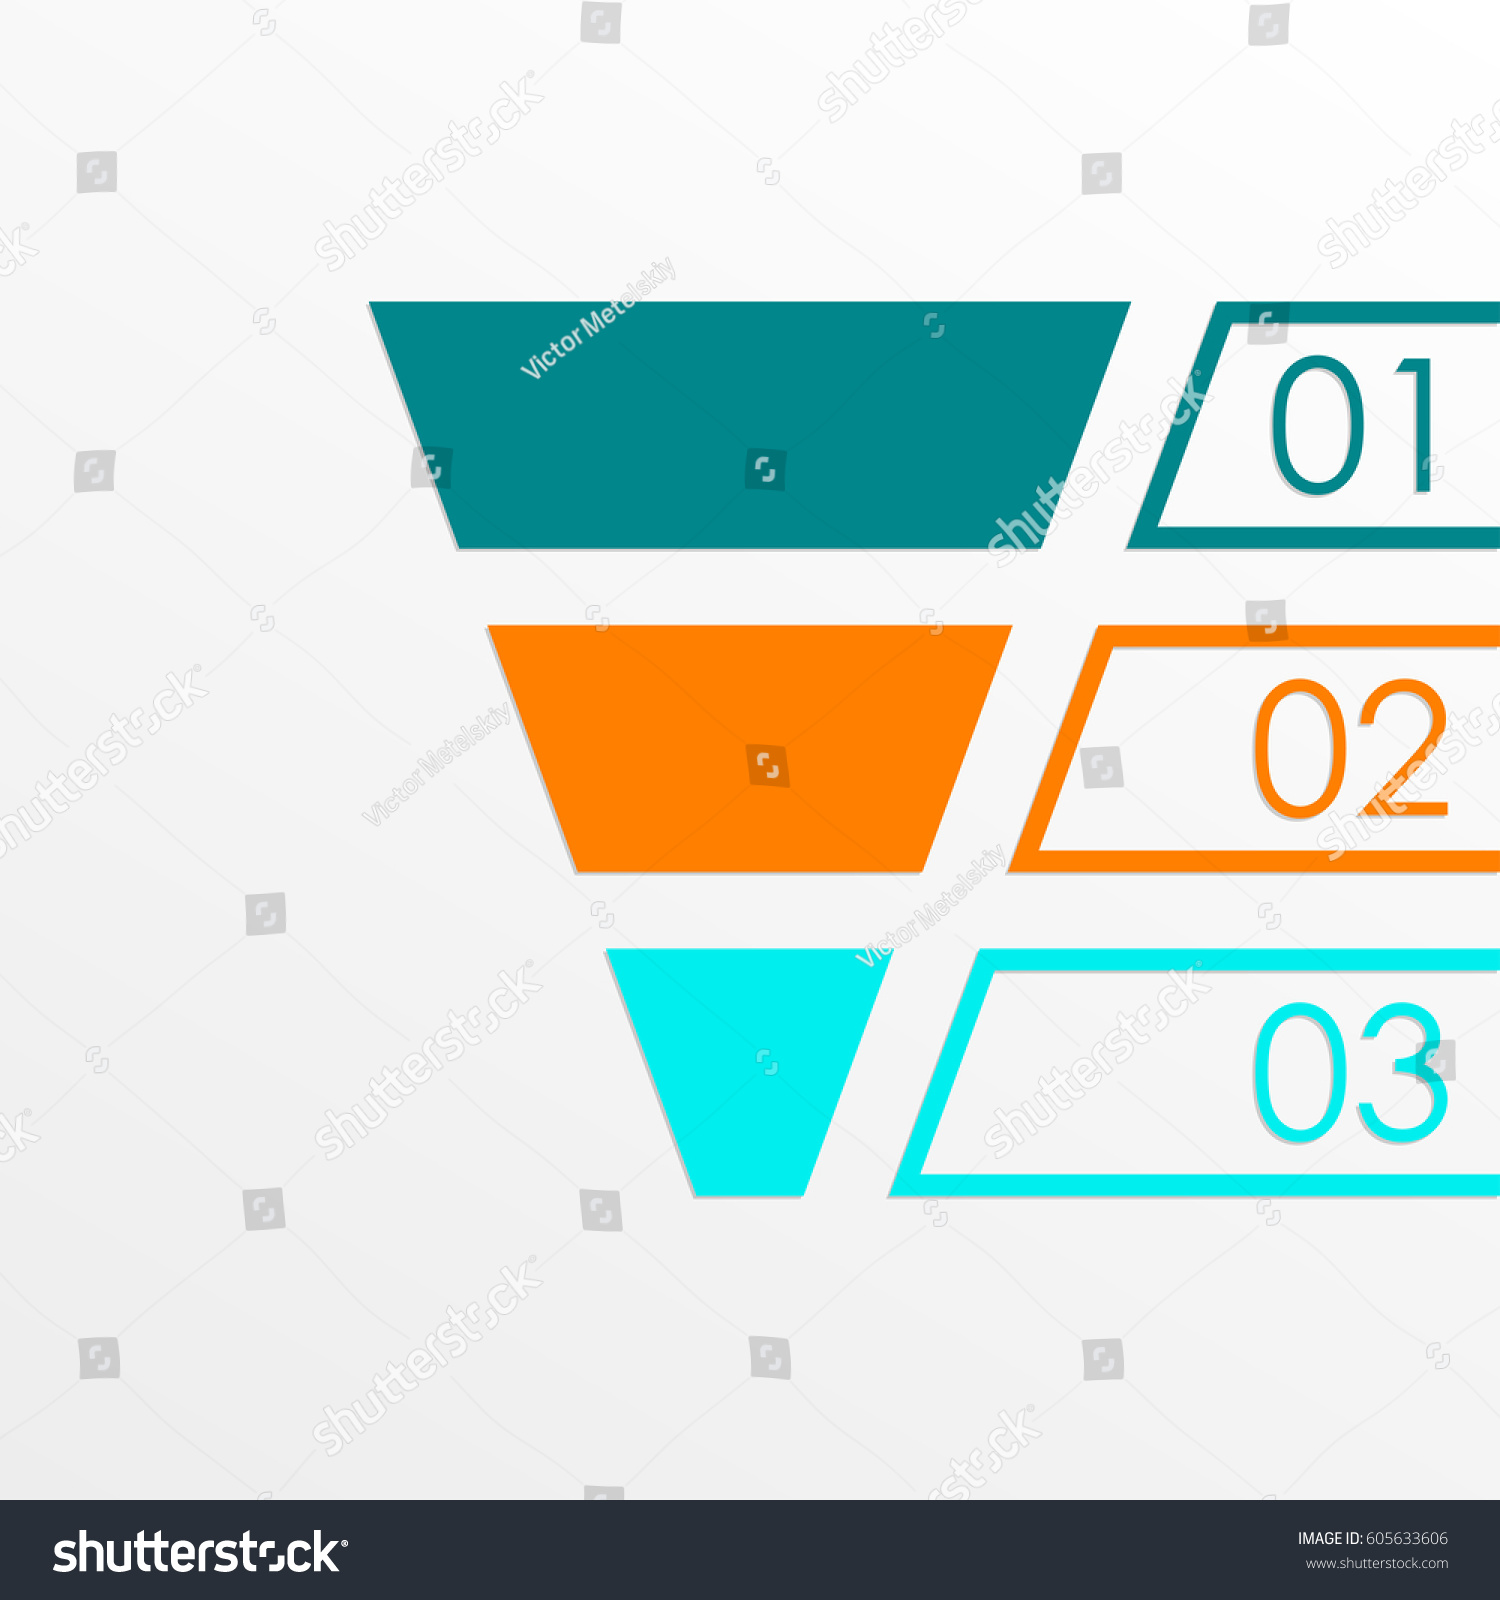 funnel symbol marketing sales chart business stock vector royalty